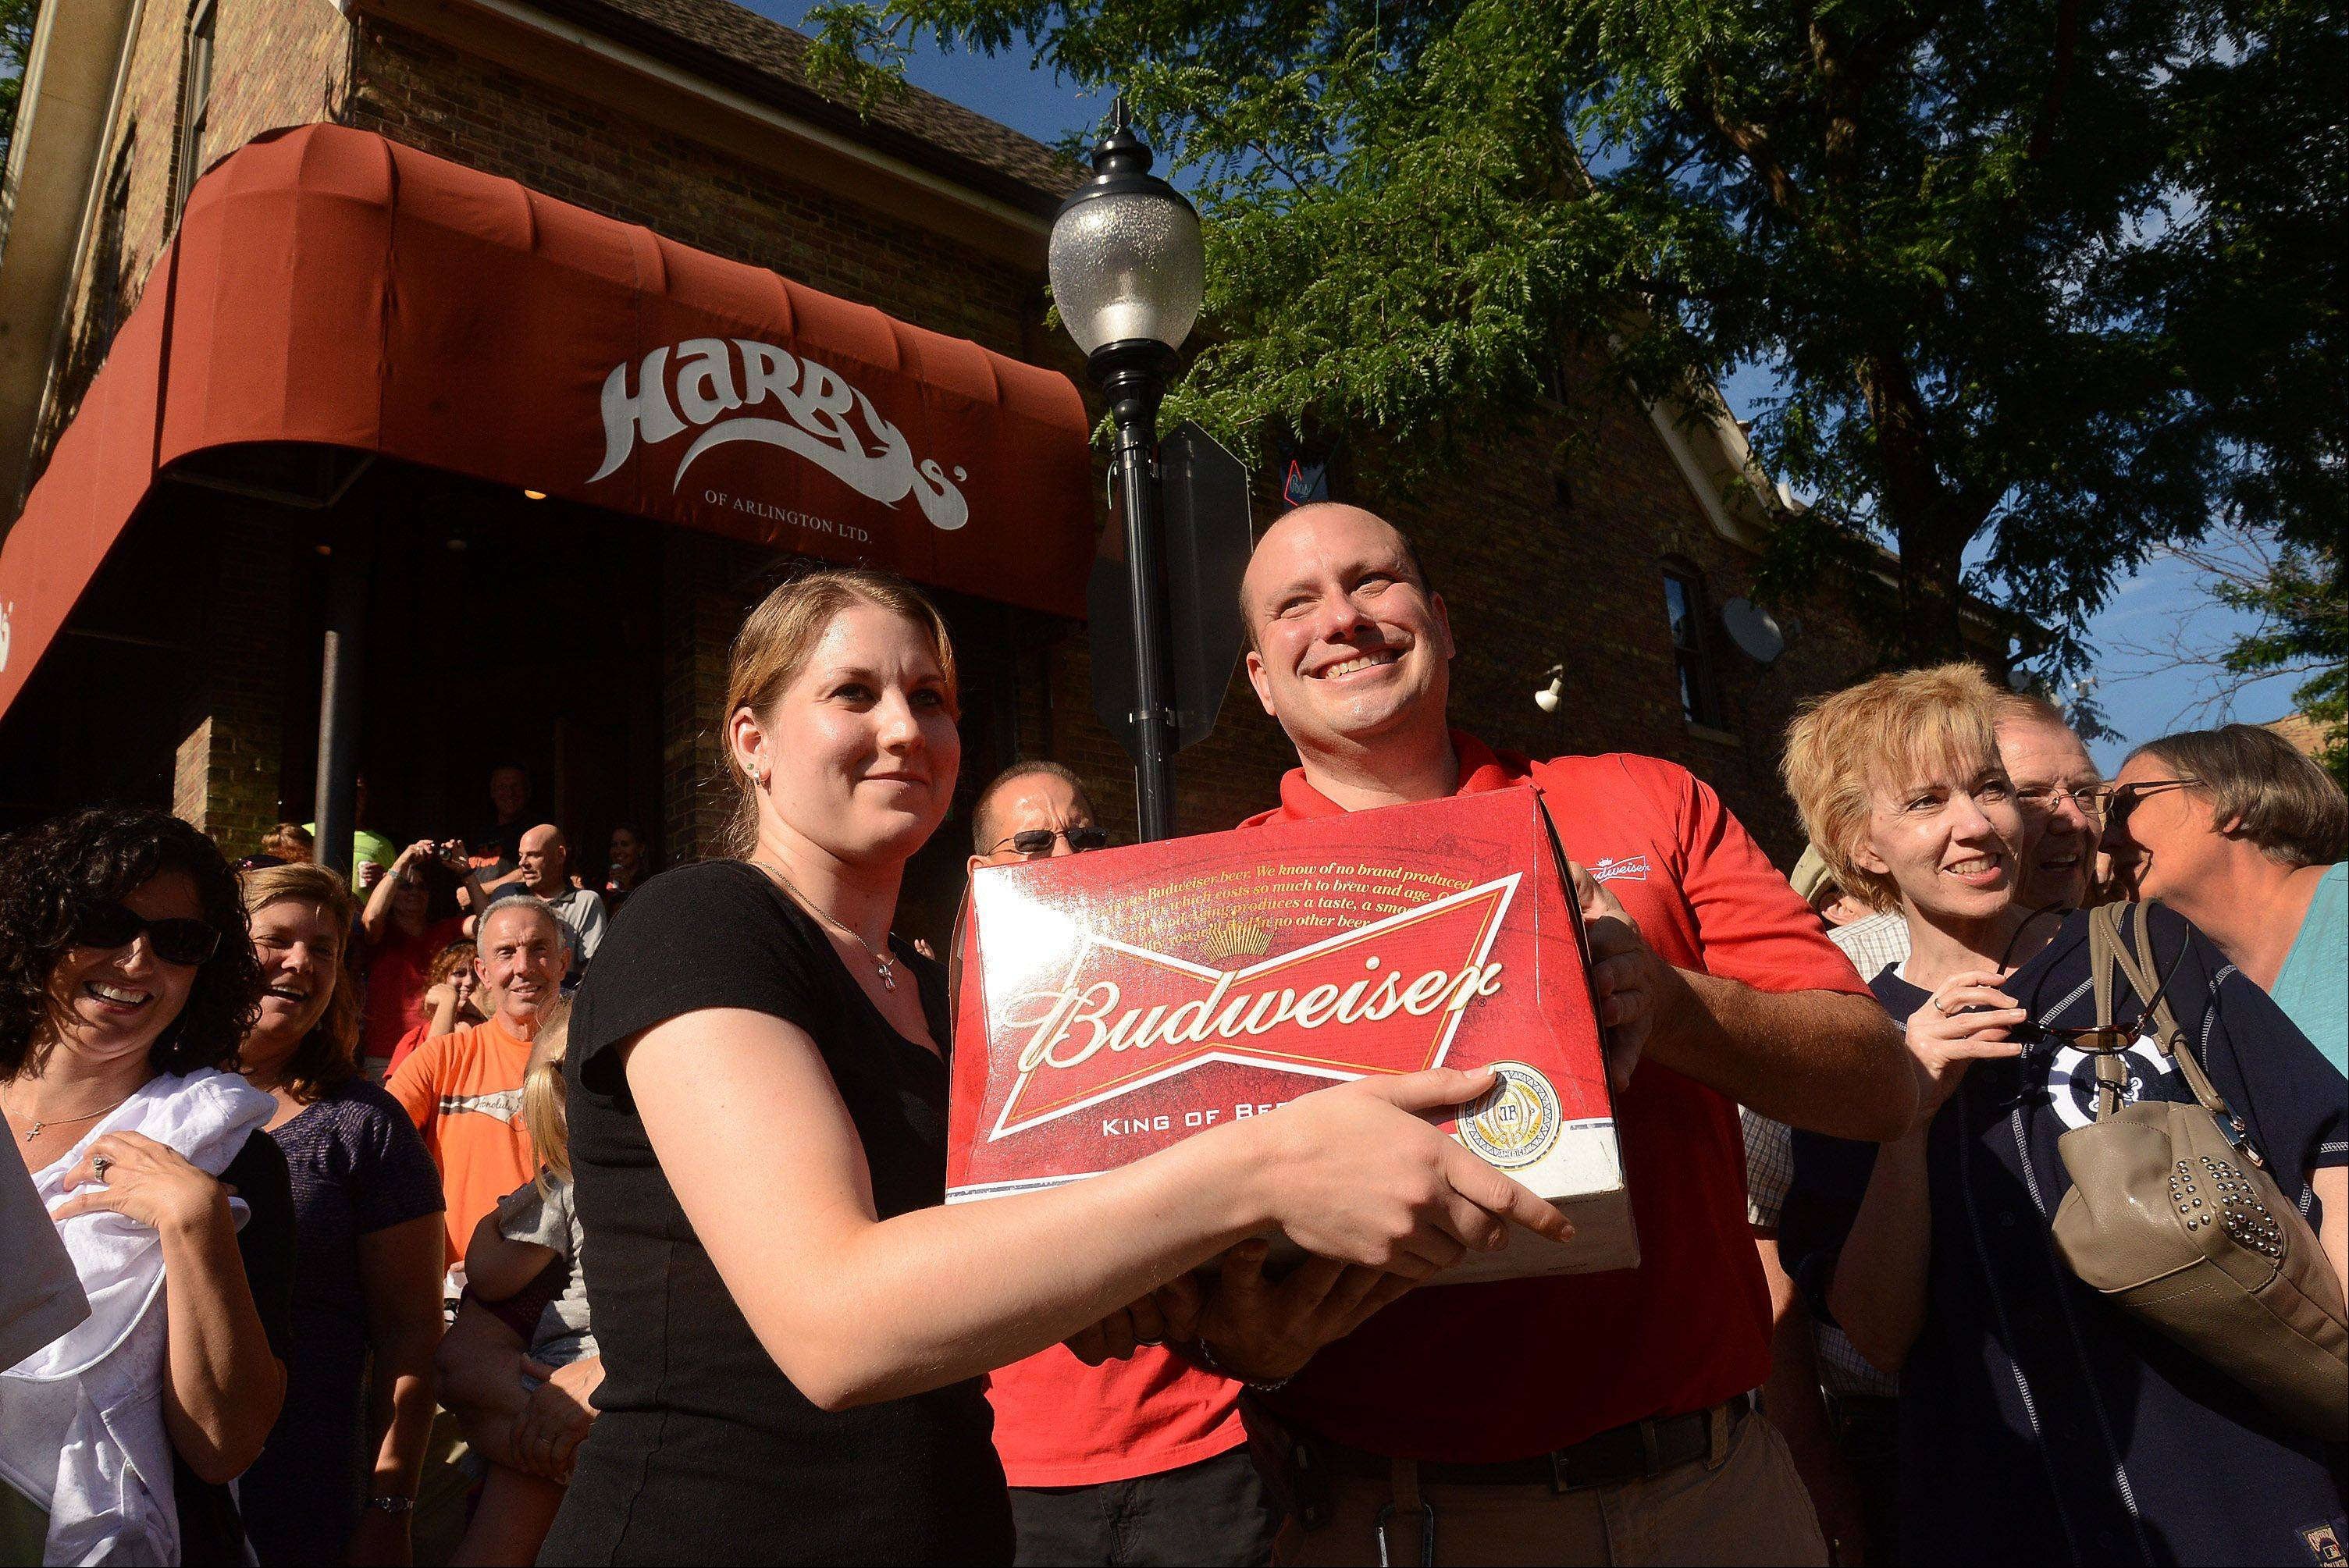 The Budweiser Clydesdales make a delivery to Harry's in downtown Arlington Heights. Jim Dvorak of Budweiser hands a case of Bud to waitress/bartender Tina Krentz.